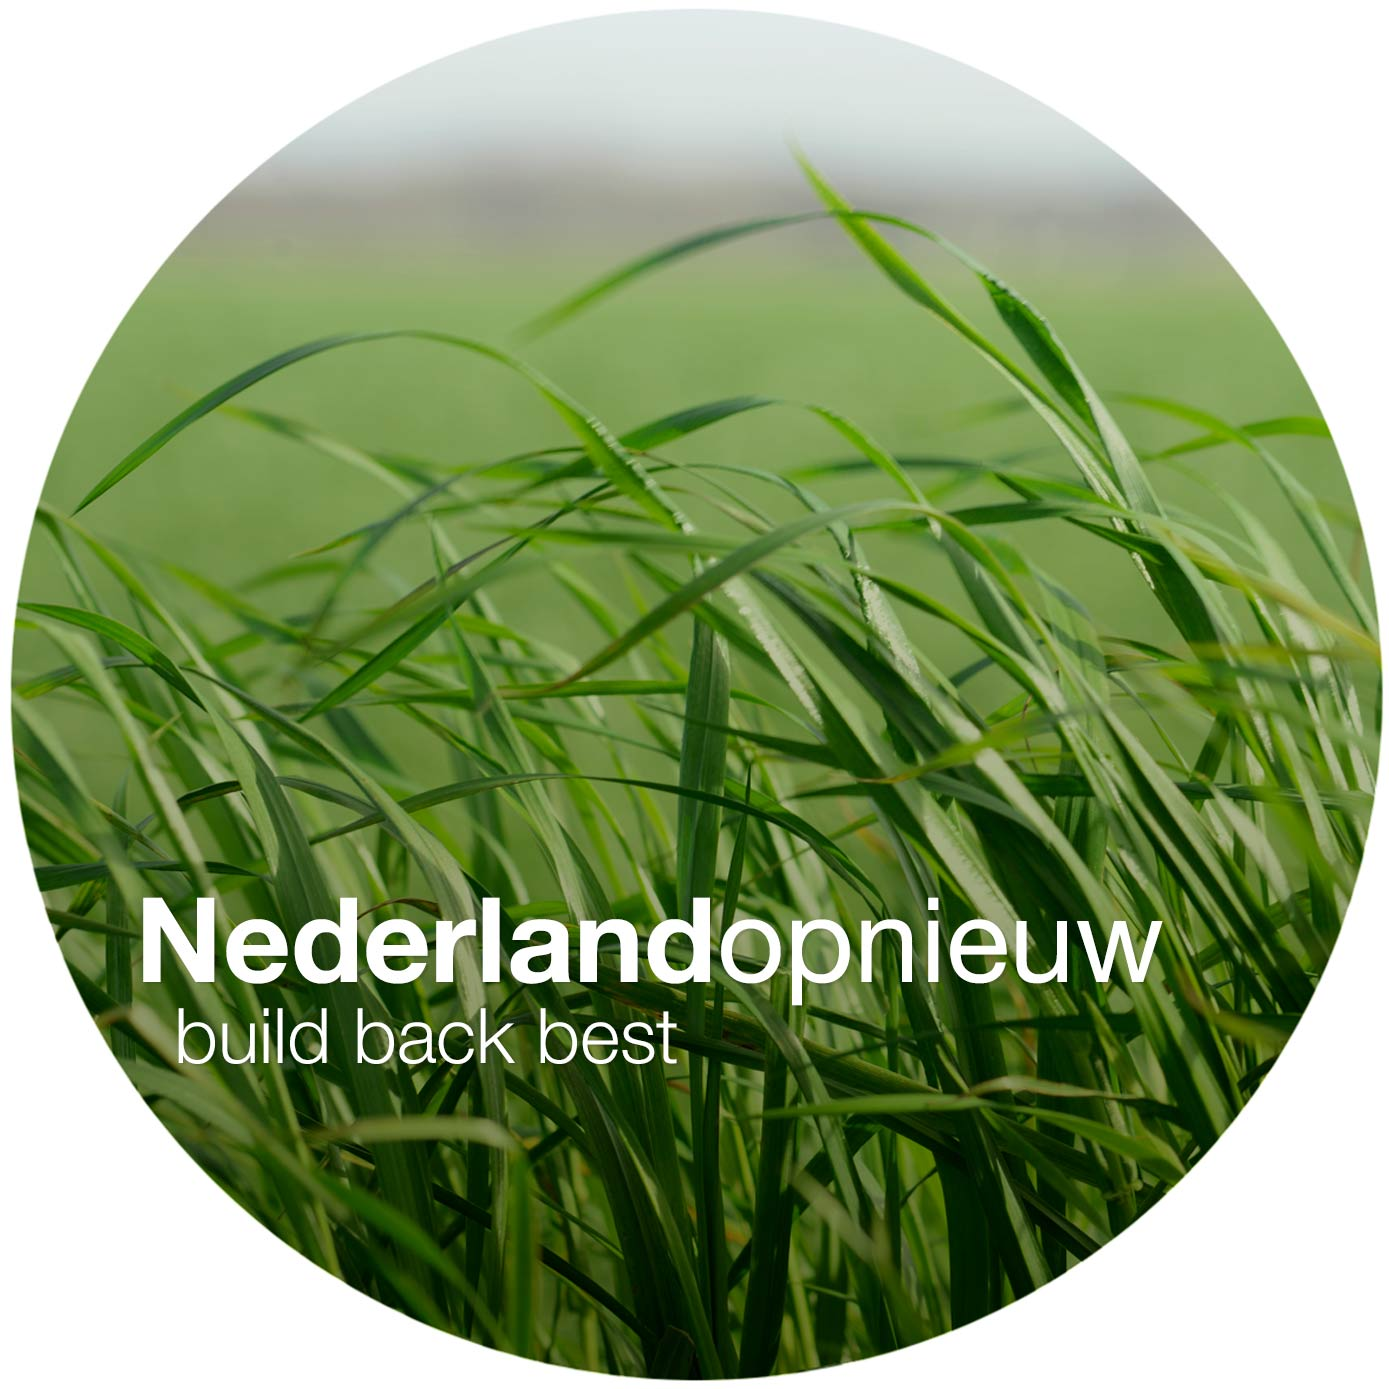 nederlandopnieuw.nl/ build back best